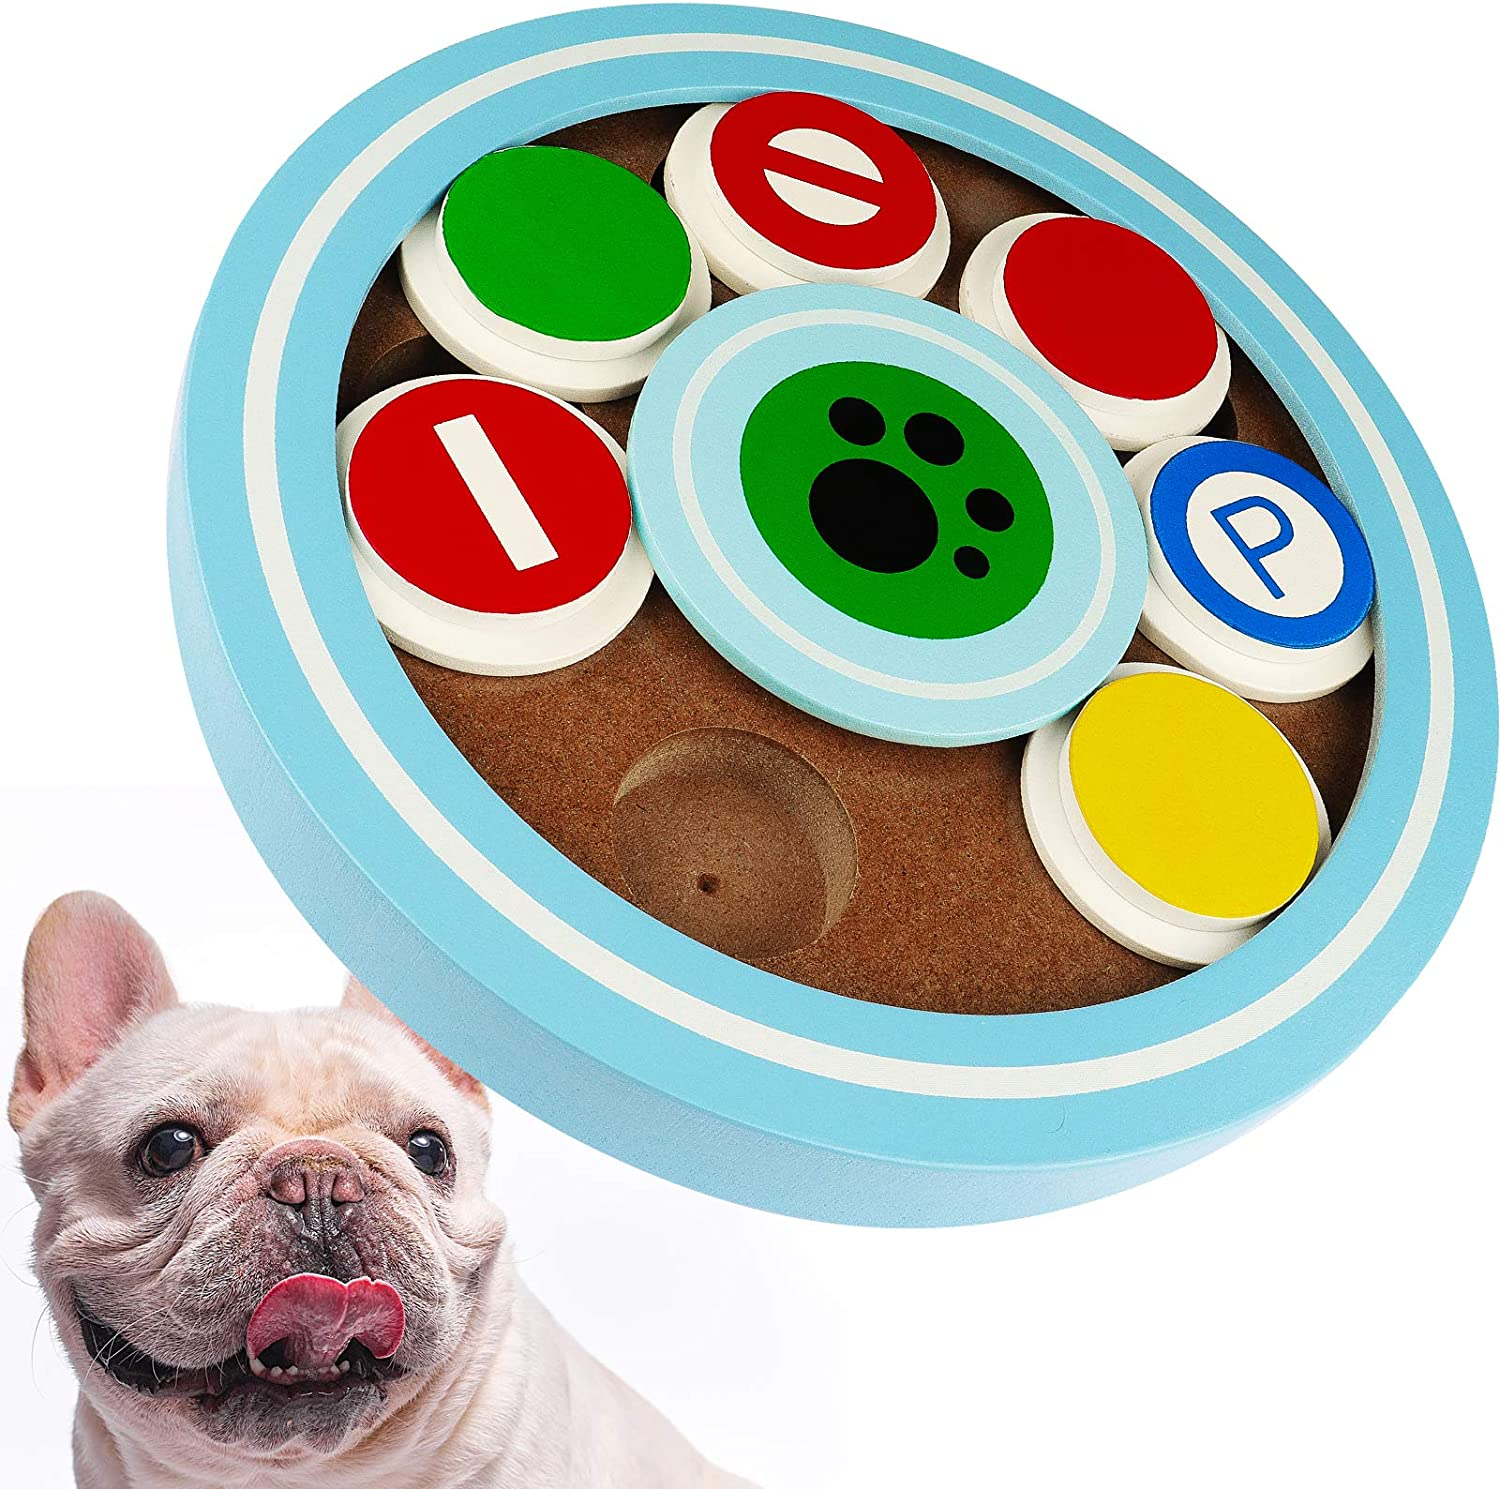 【2021 Upgraded】 Dog Puzzle Toys for Puppy Treat Training, Interactive Dog Toys for Pet, Cat & Dog Slow Feeder Food Dispenser, Dog Treat Puzzle Toy Games for Small Large Dogs (Wooden Disk)